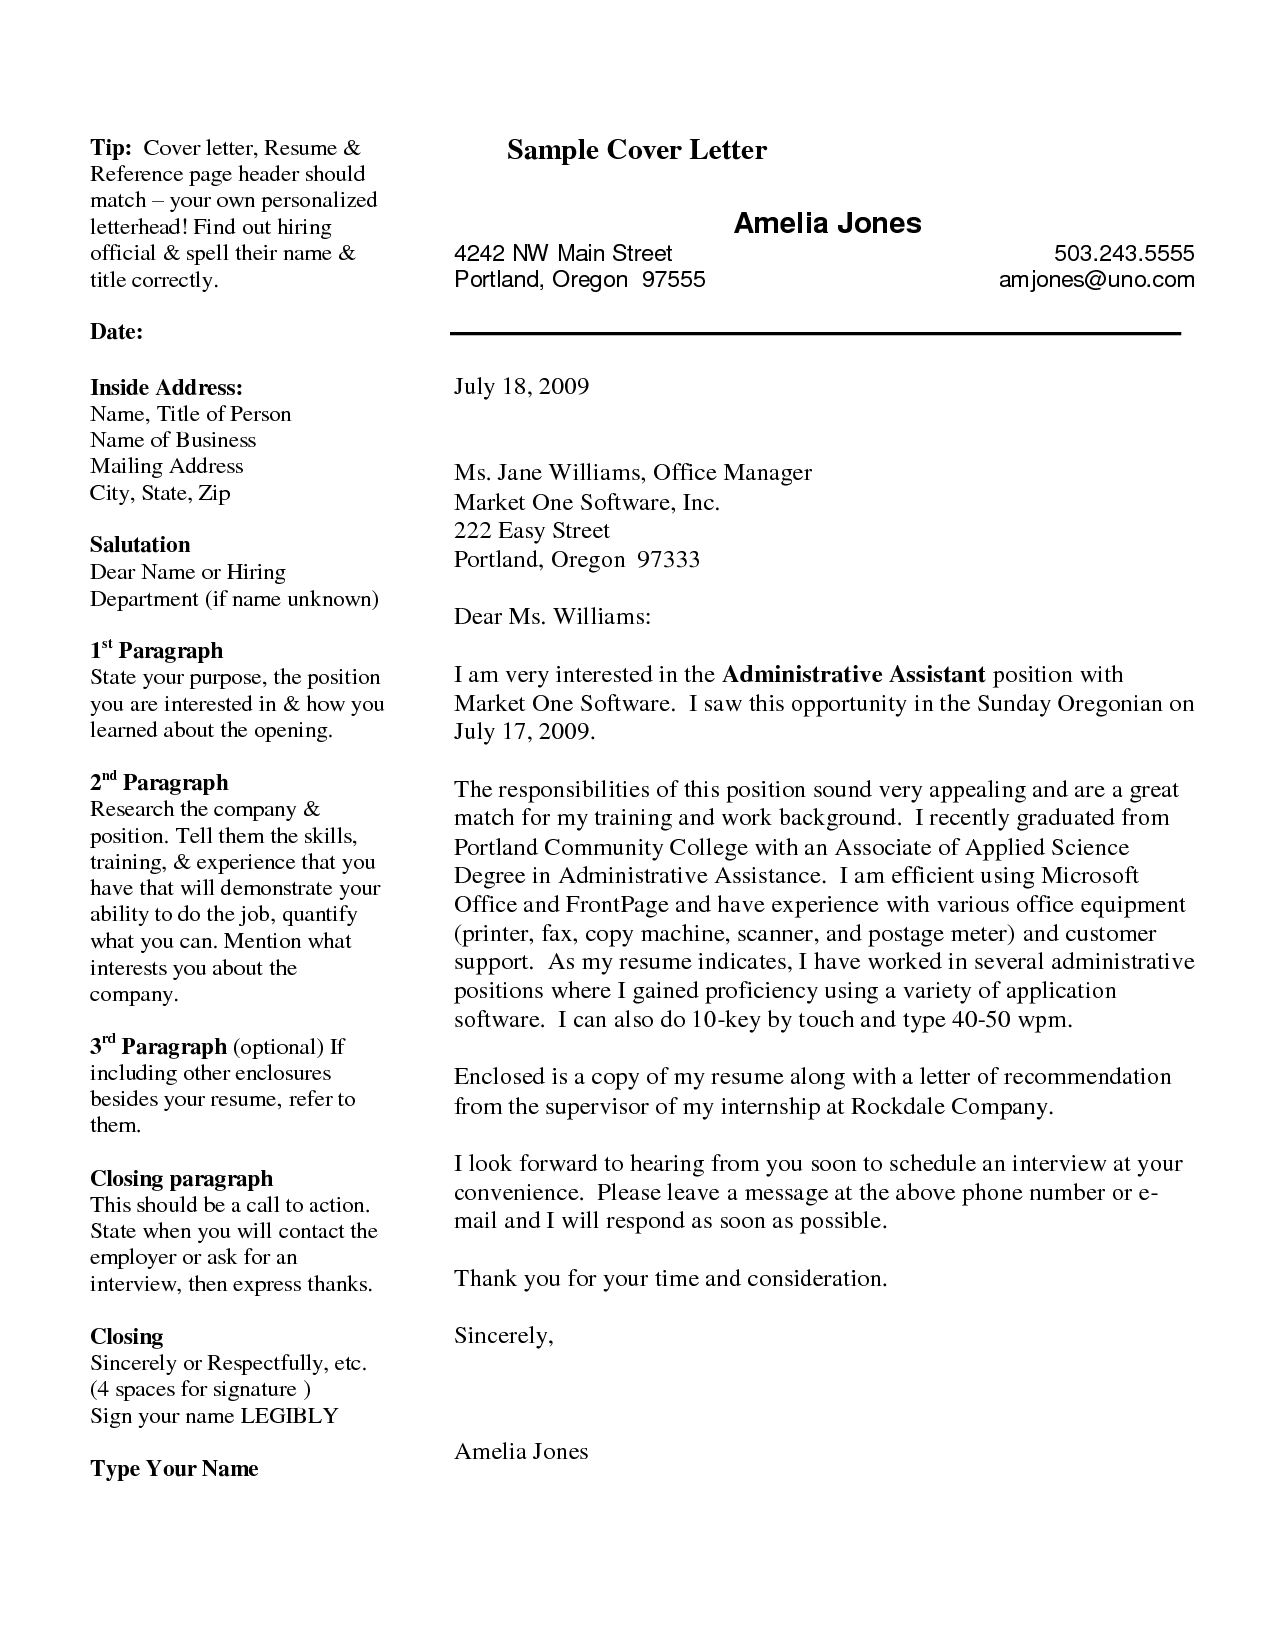 professional resume cover letter samplesprofessional resume cover letter samples professional resume cover letter sampleshow - Cover Letter For A Resume Example